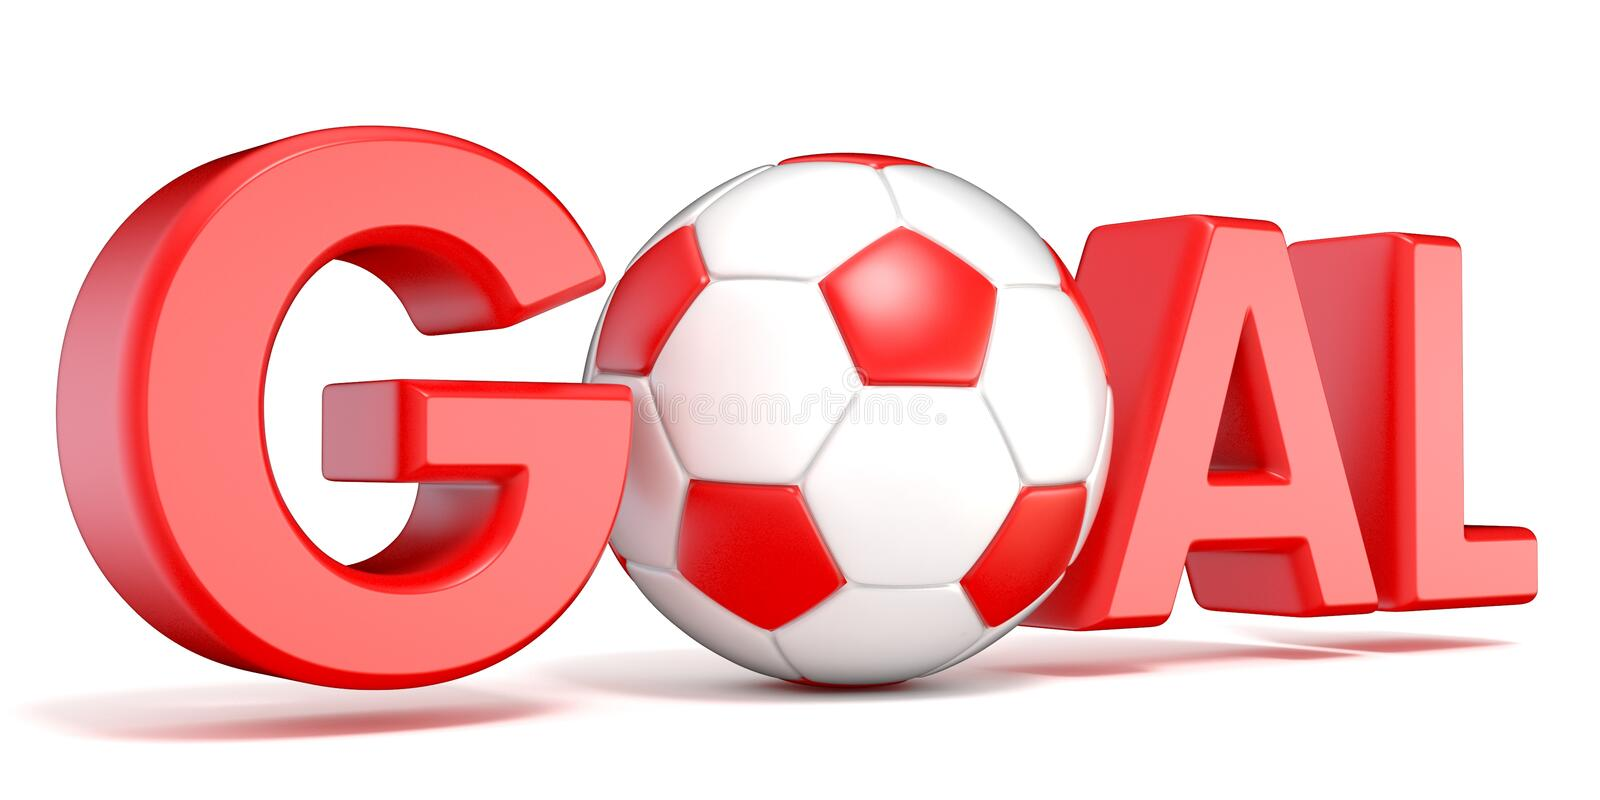 Word GOAL with the football, soccer ball. 3D royalty free illustration